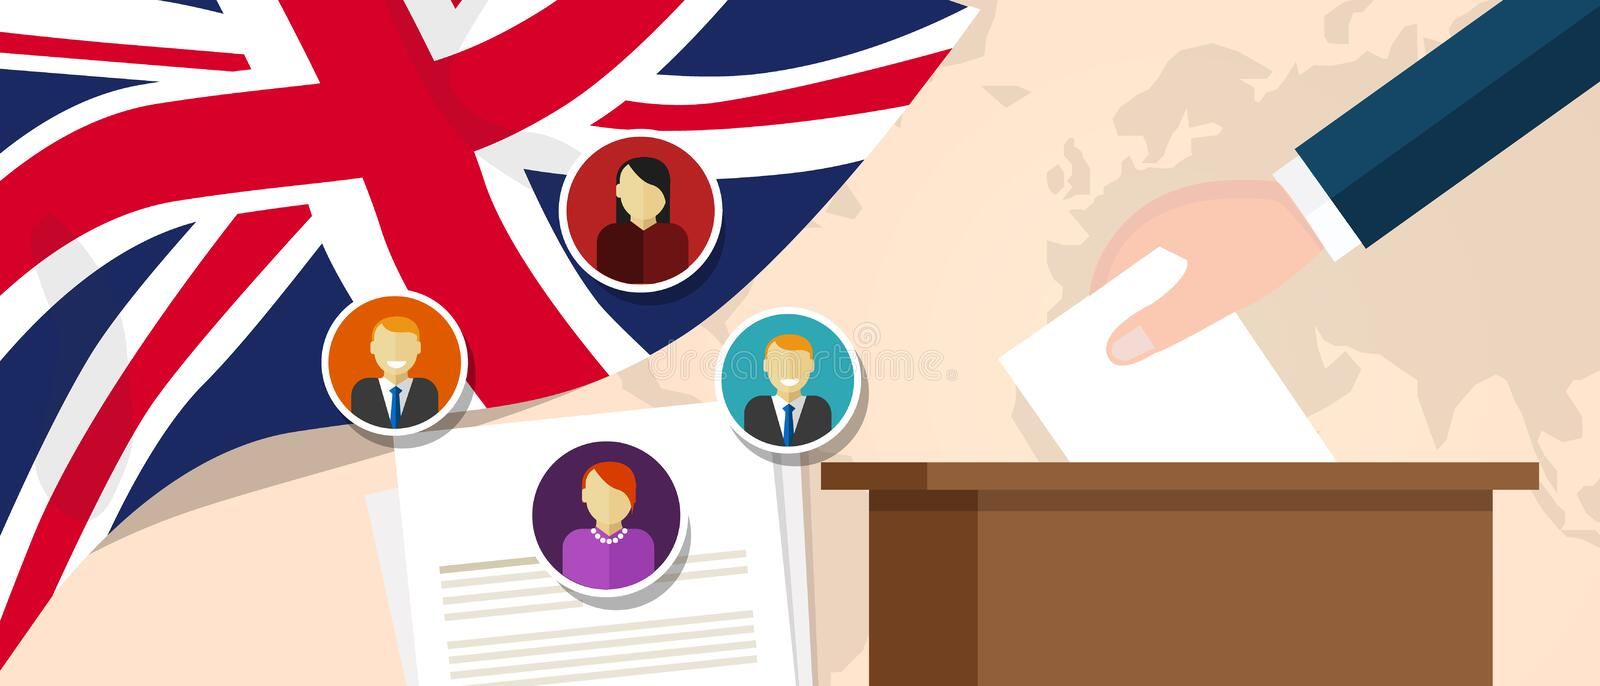 UK United Kingdom England democracy political process selecting president or parliament member with election and. Referendum freedom to vote vector royalty free illustration